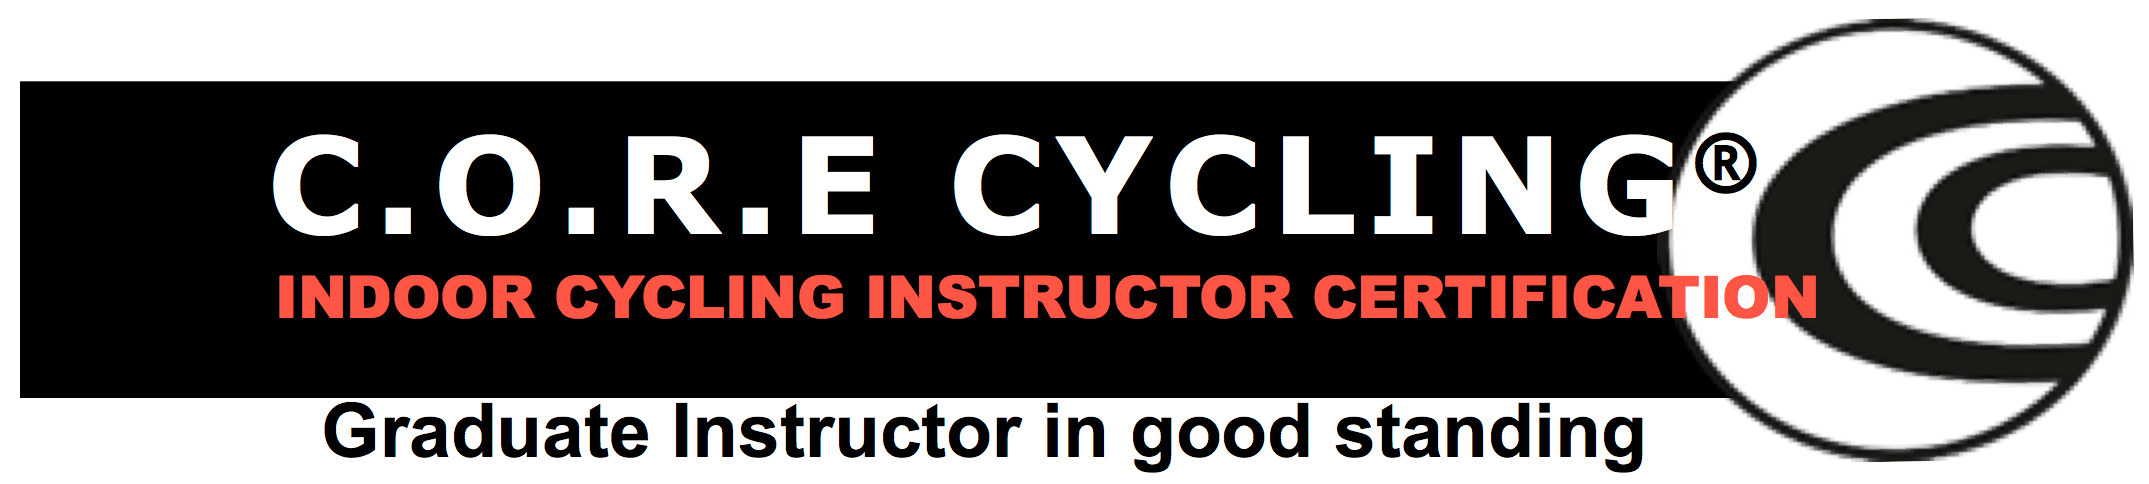 C.O.R.E Indoor Cycling certification